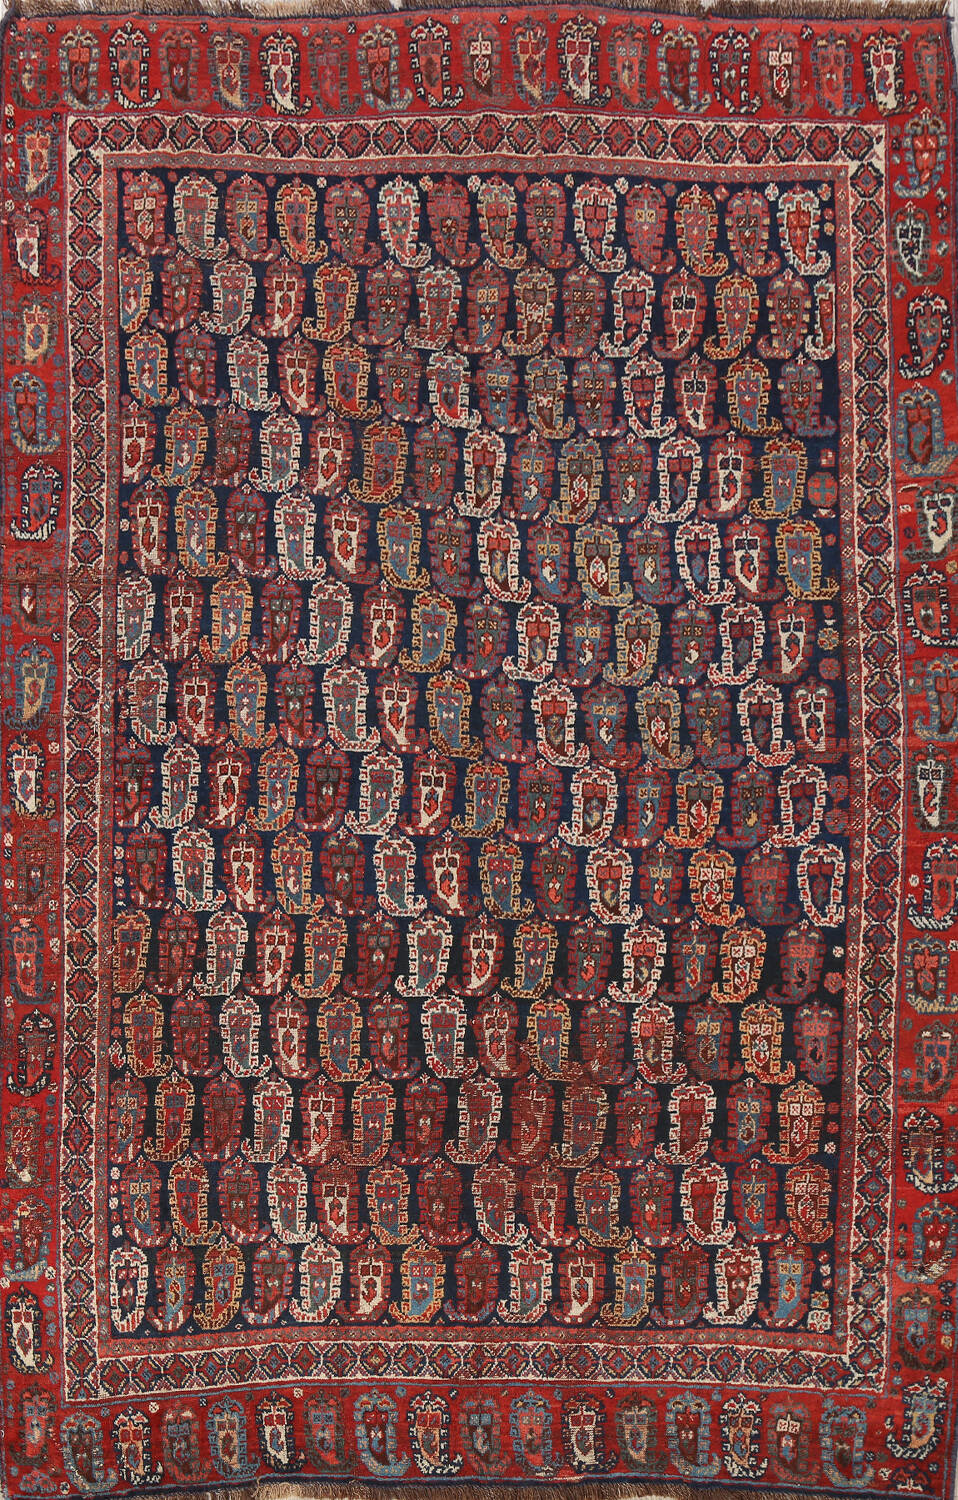 Pre-1900 Antique All-Over Malayer Persian Area Rug 6x7 image 1